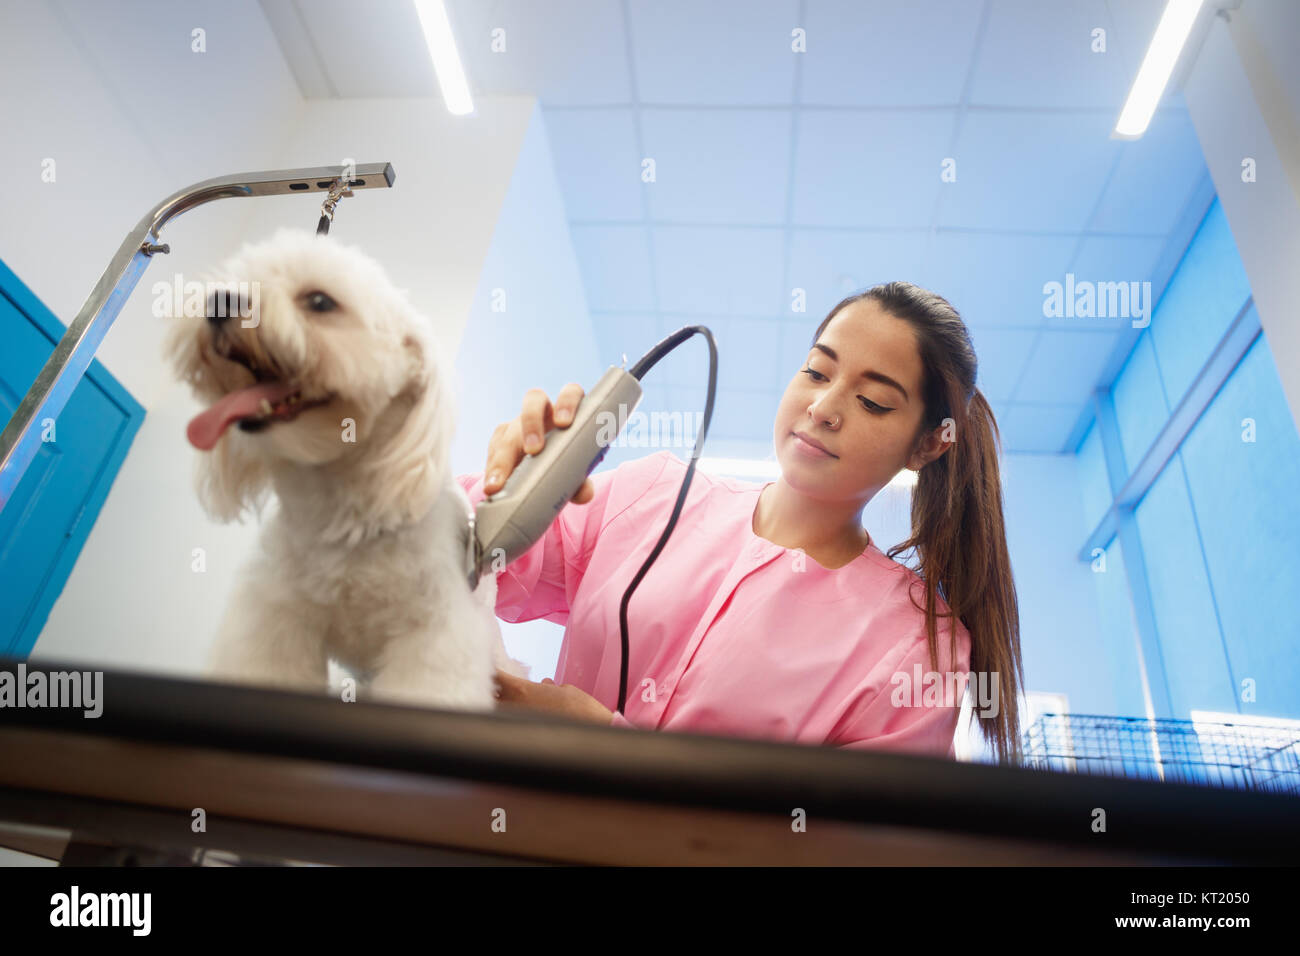 Young woman working in pet shop, trimming dog hair with clipper, girl grooming puppy for beauty in store. People, Stock Photo